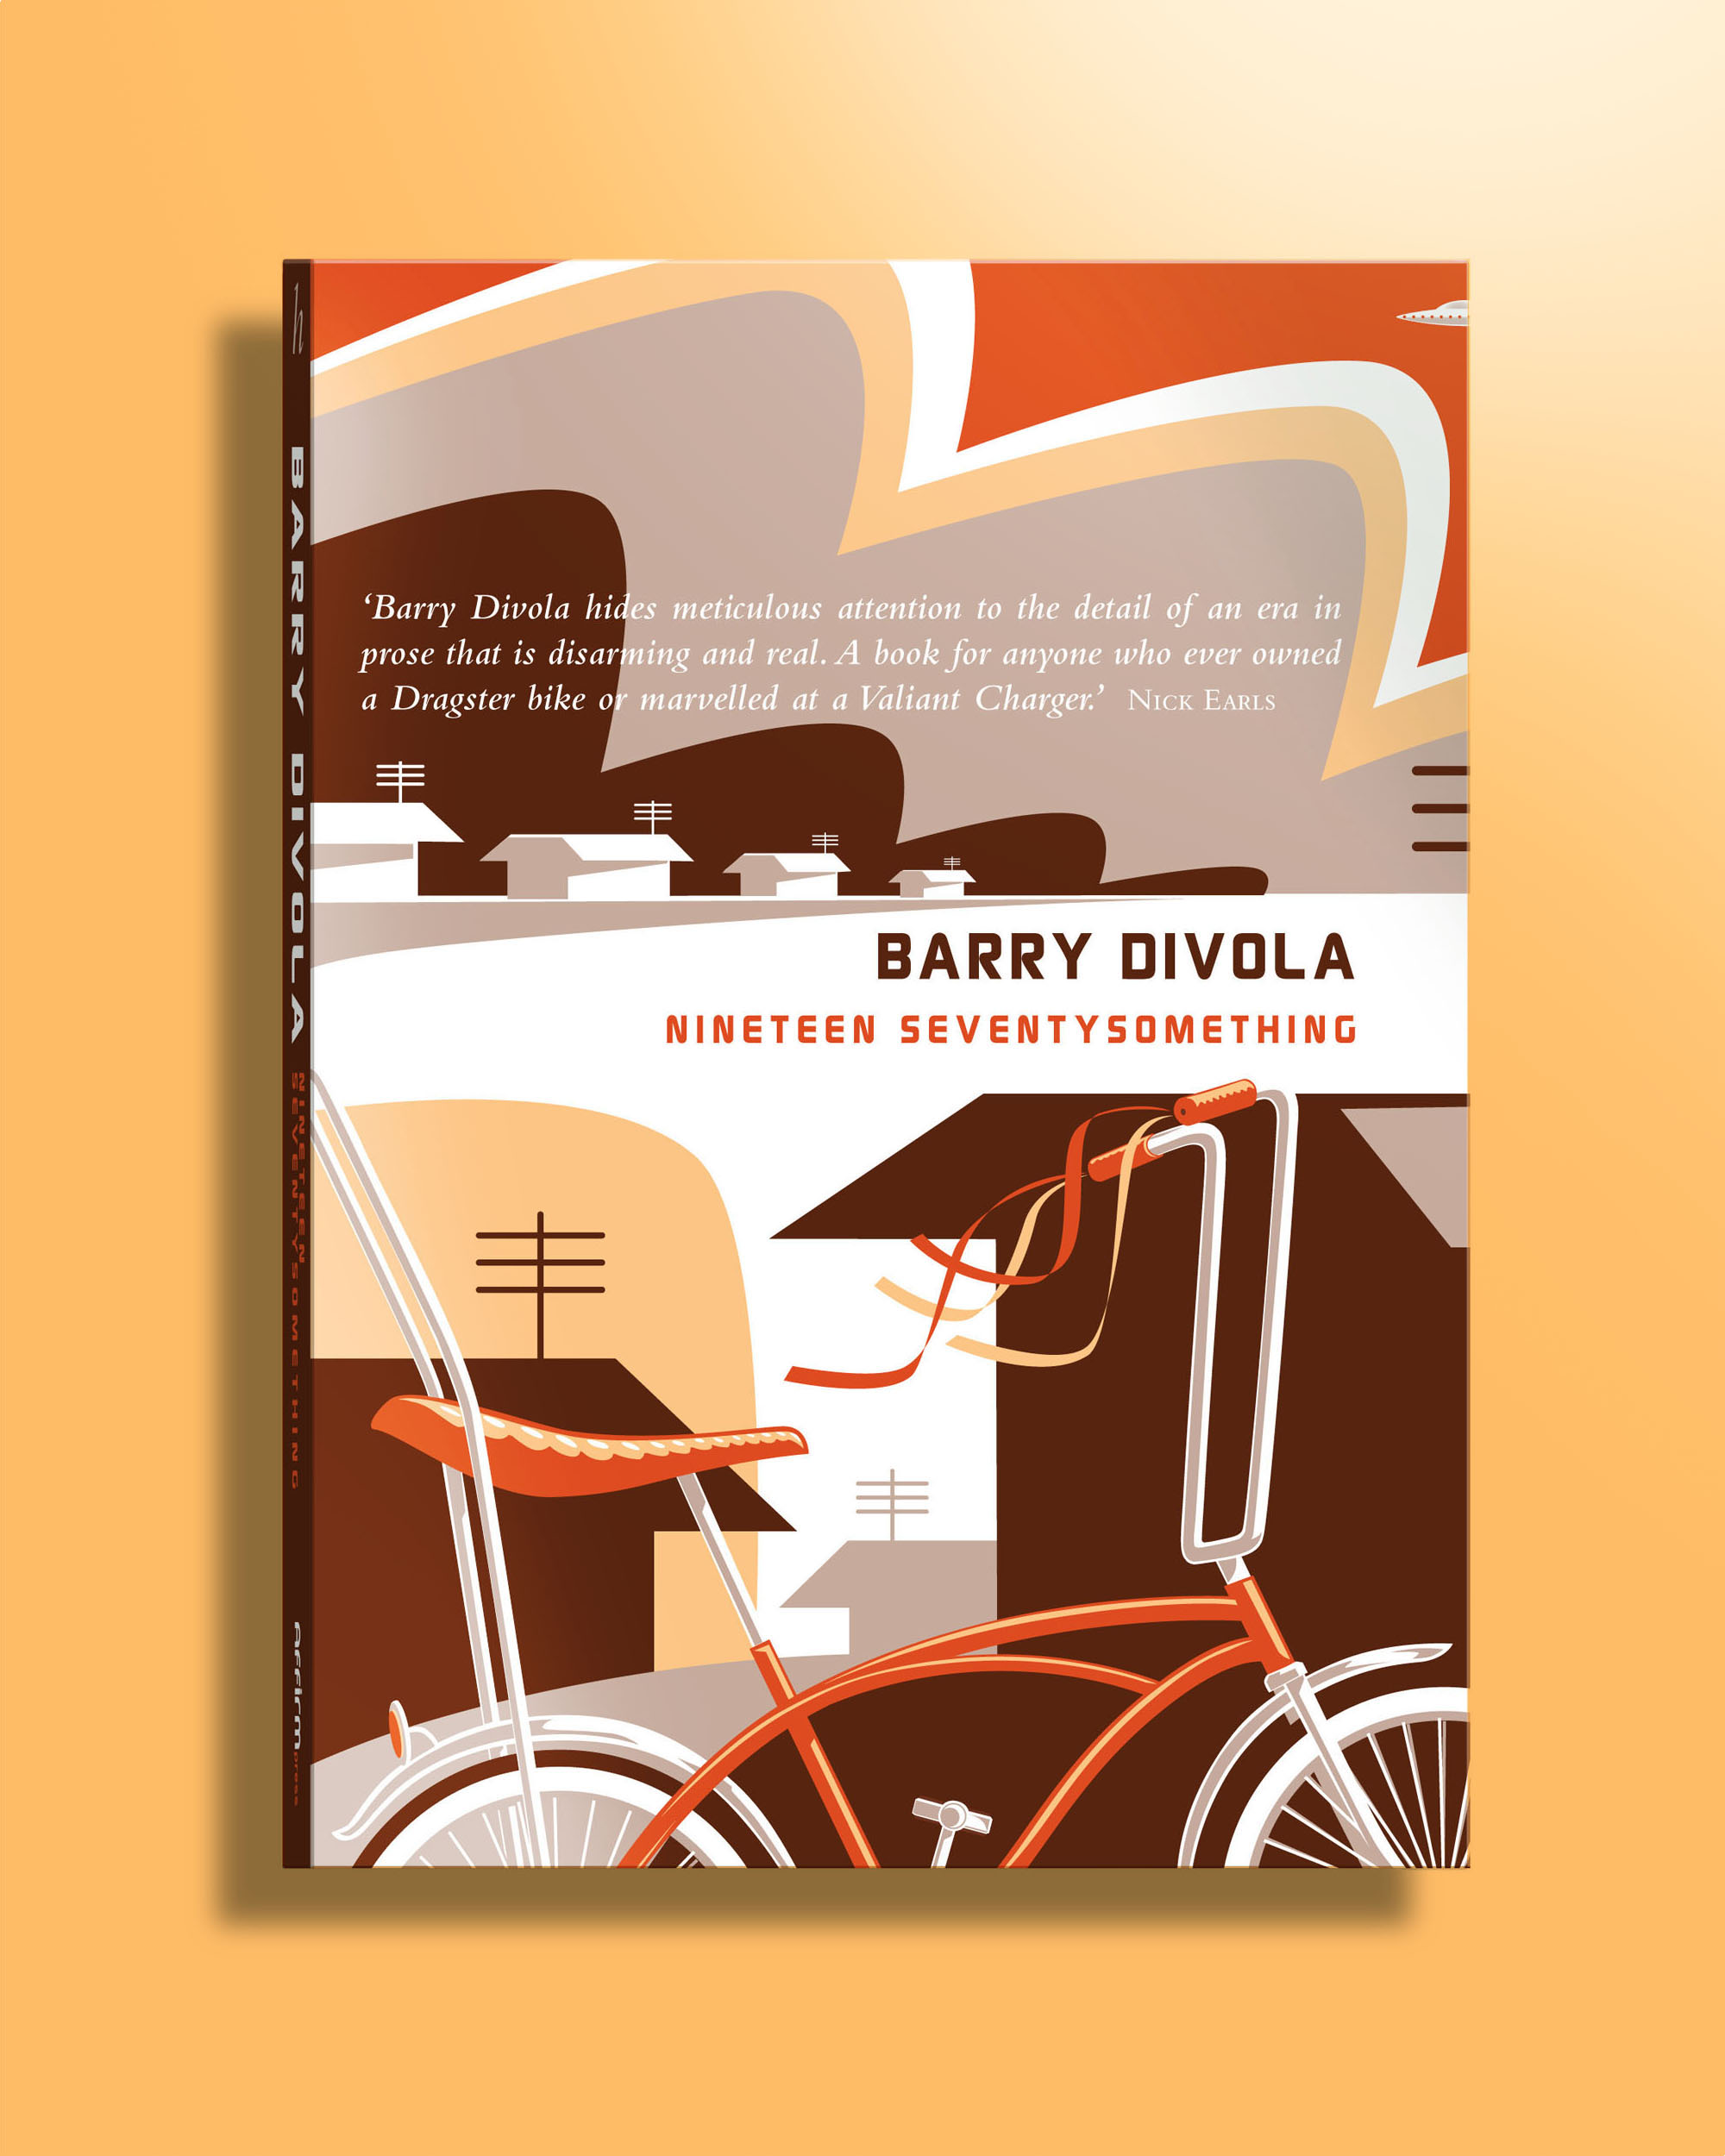 Bicycle Suburbia-Dean Gorissen Illustration.jpg